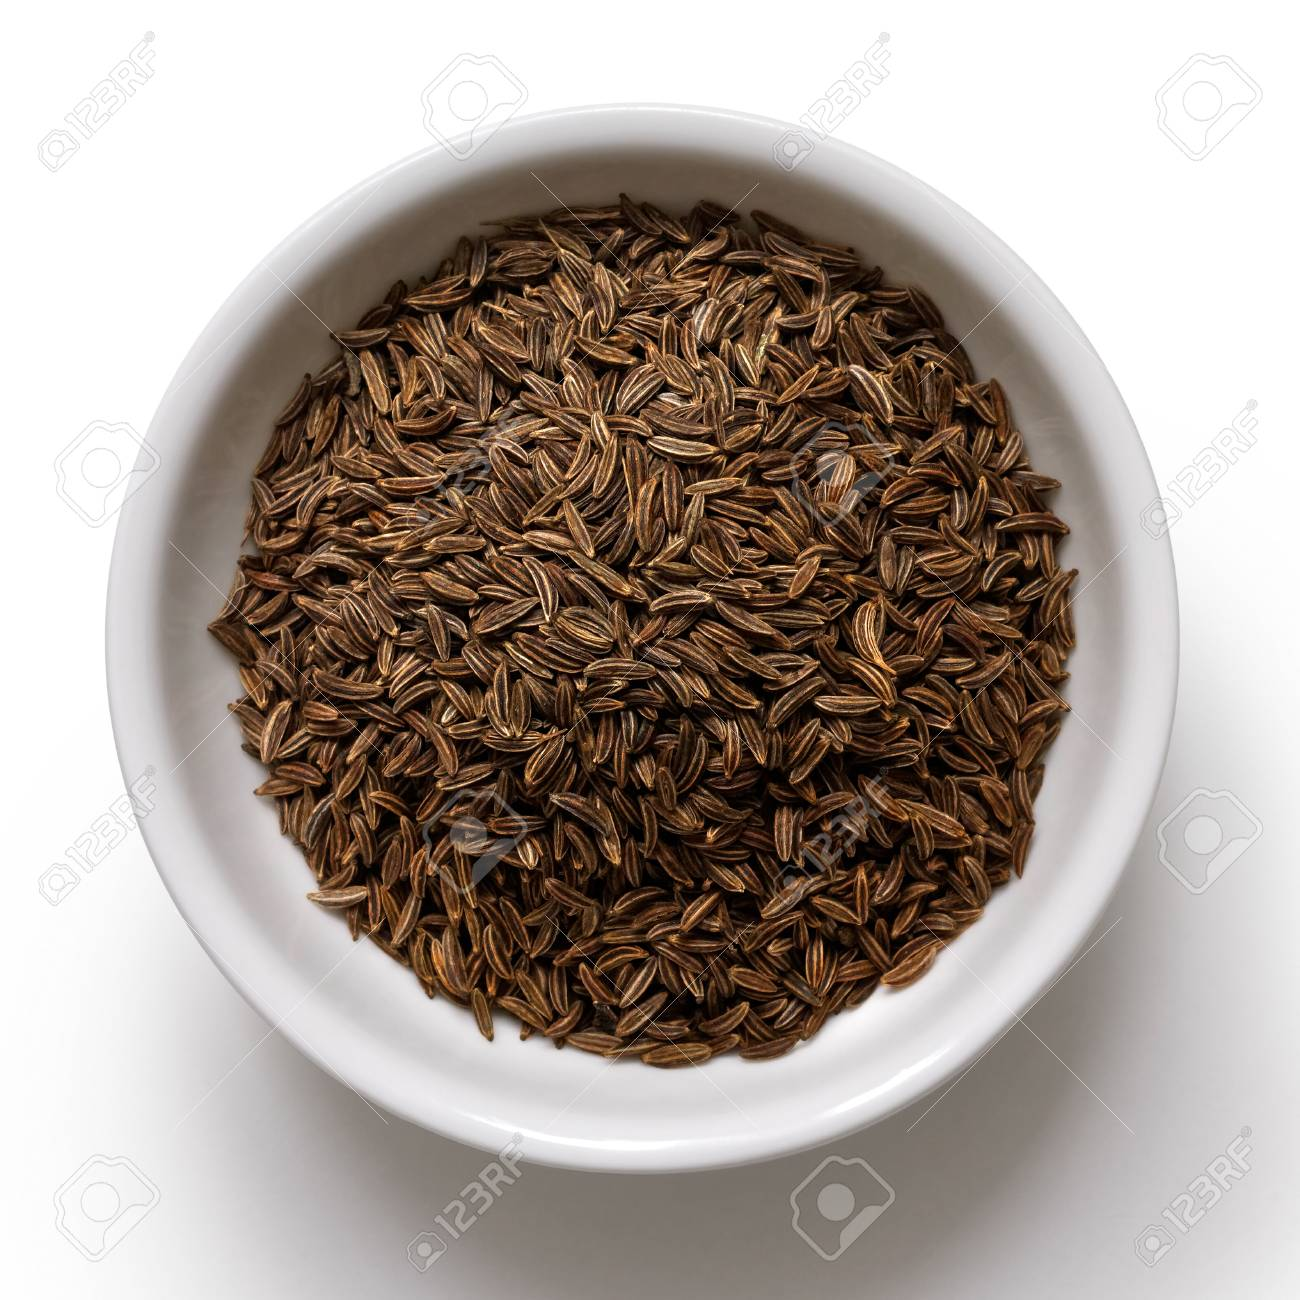 Caraway or cumin seeds in white ceramic bowl isolated on white